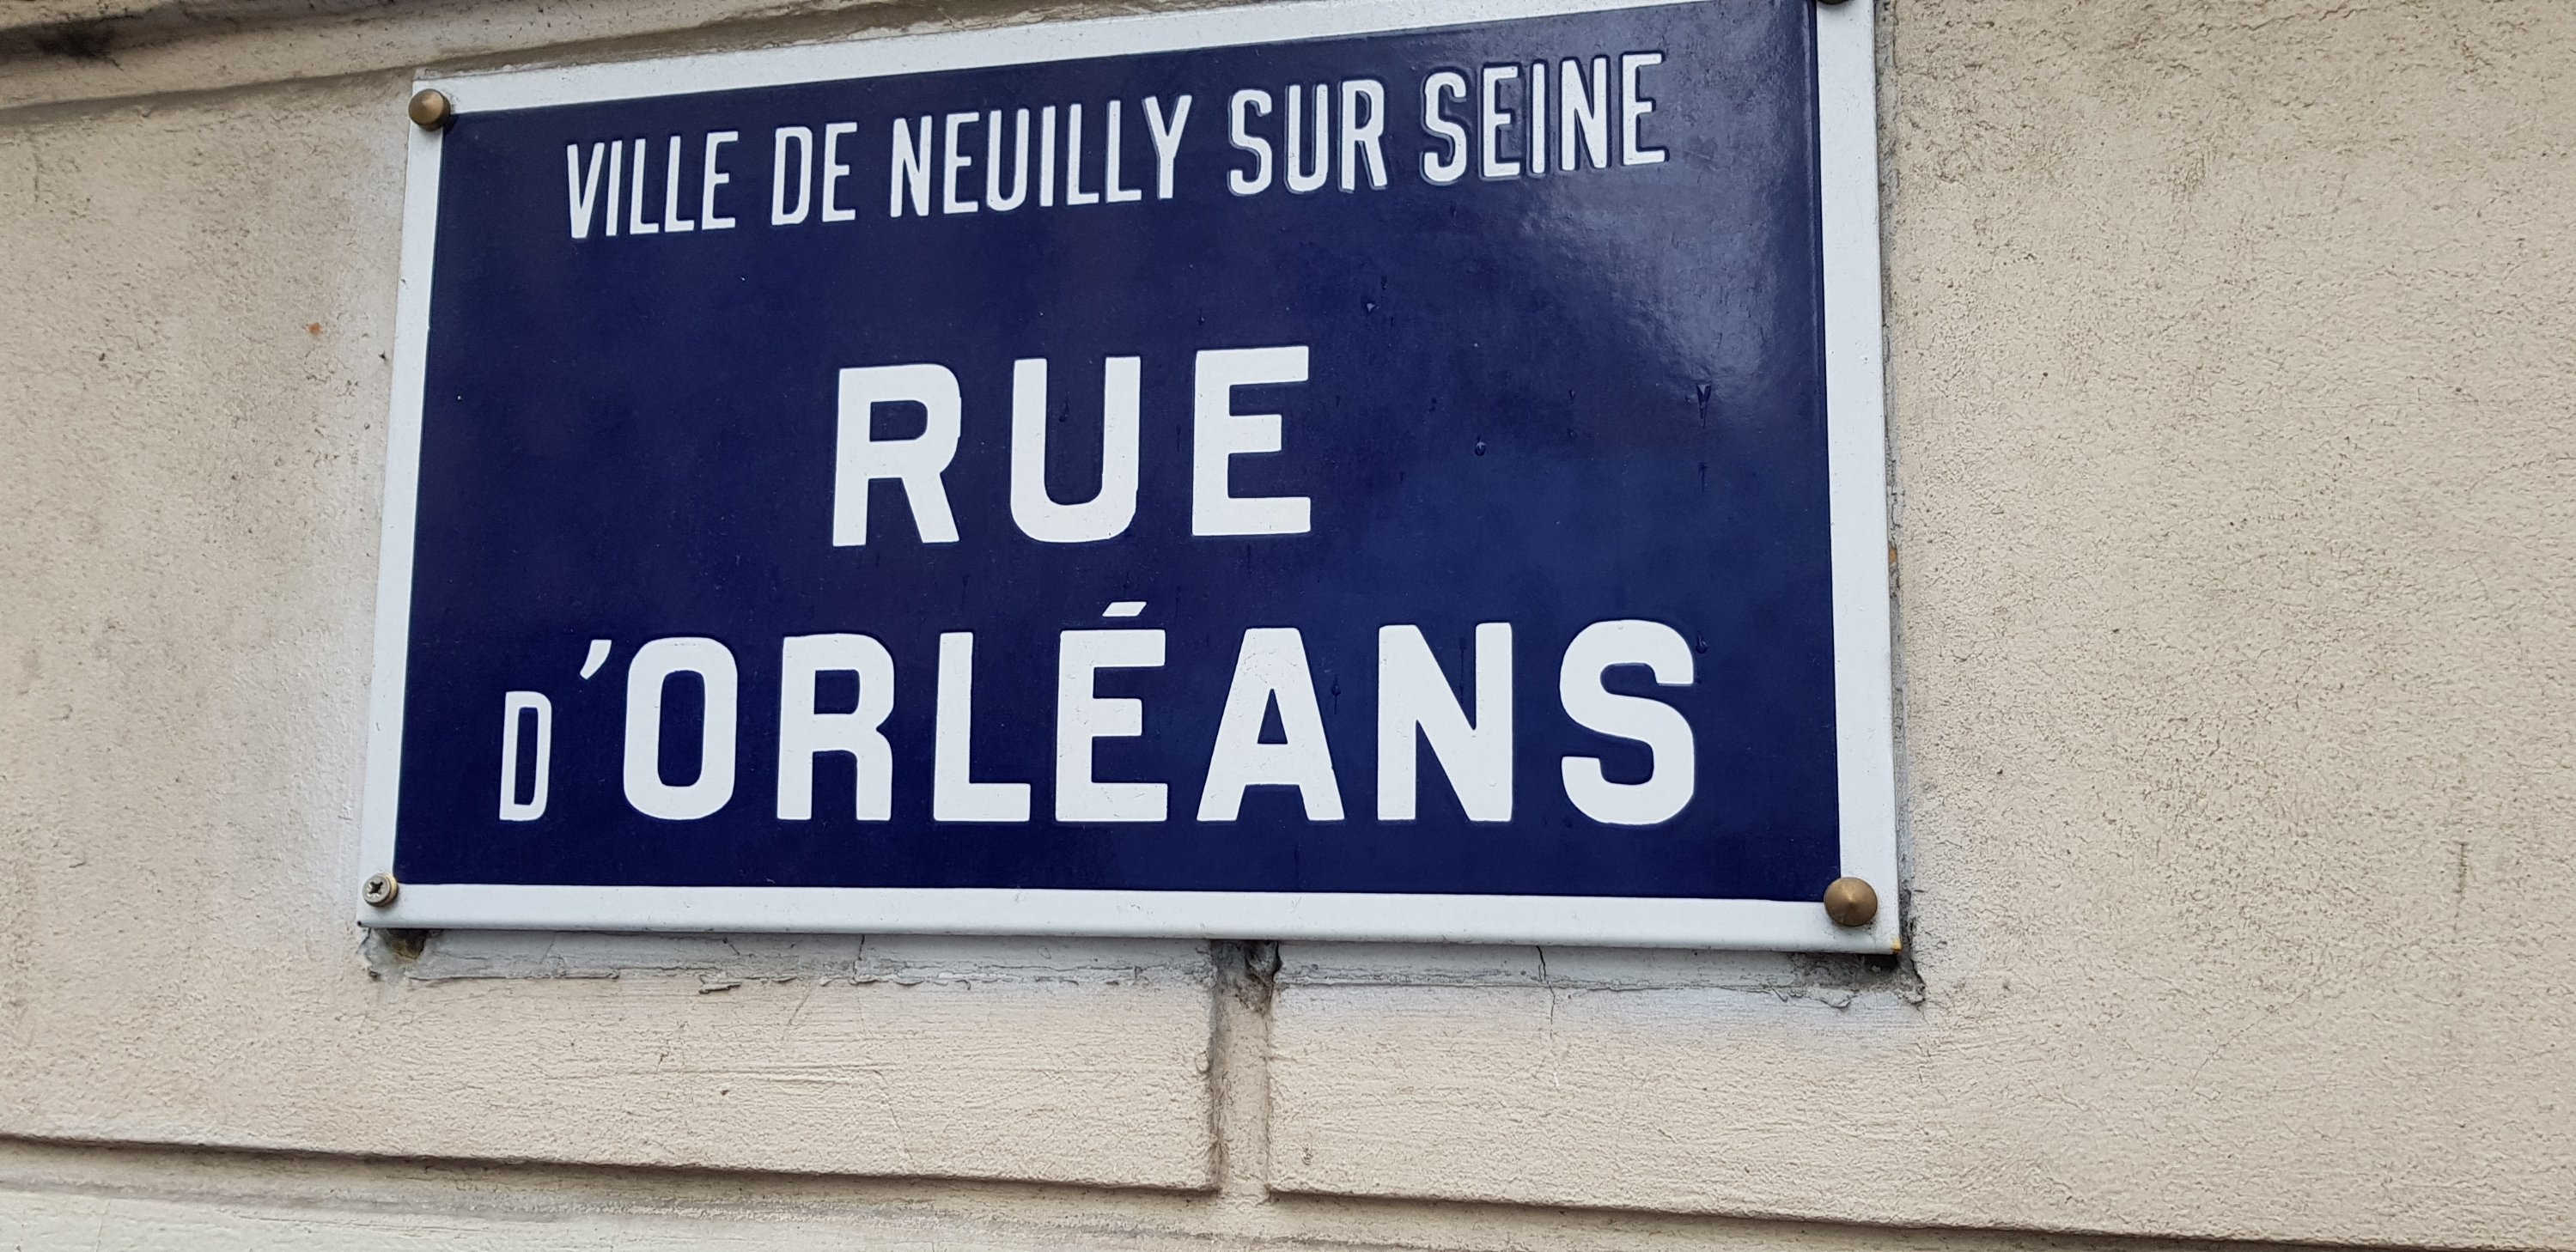 Plaque of the road Rue d'Orleans in Neuilly